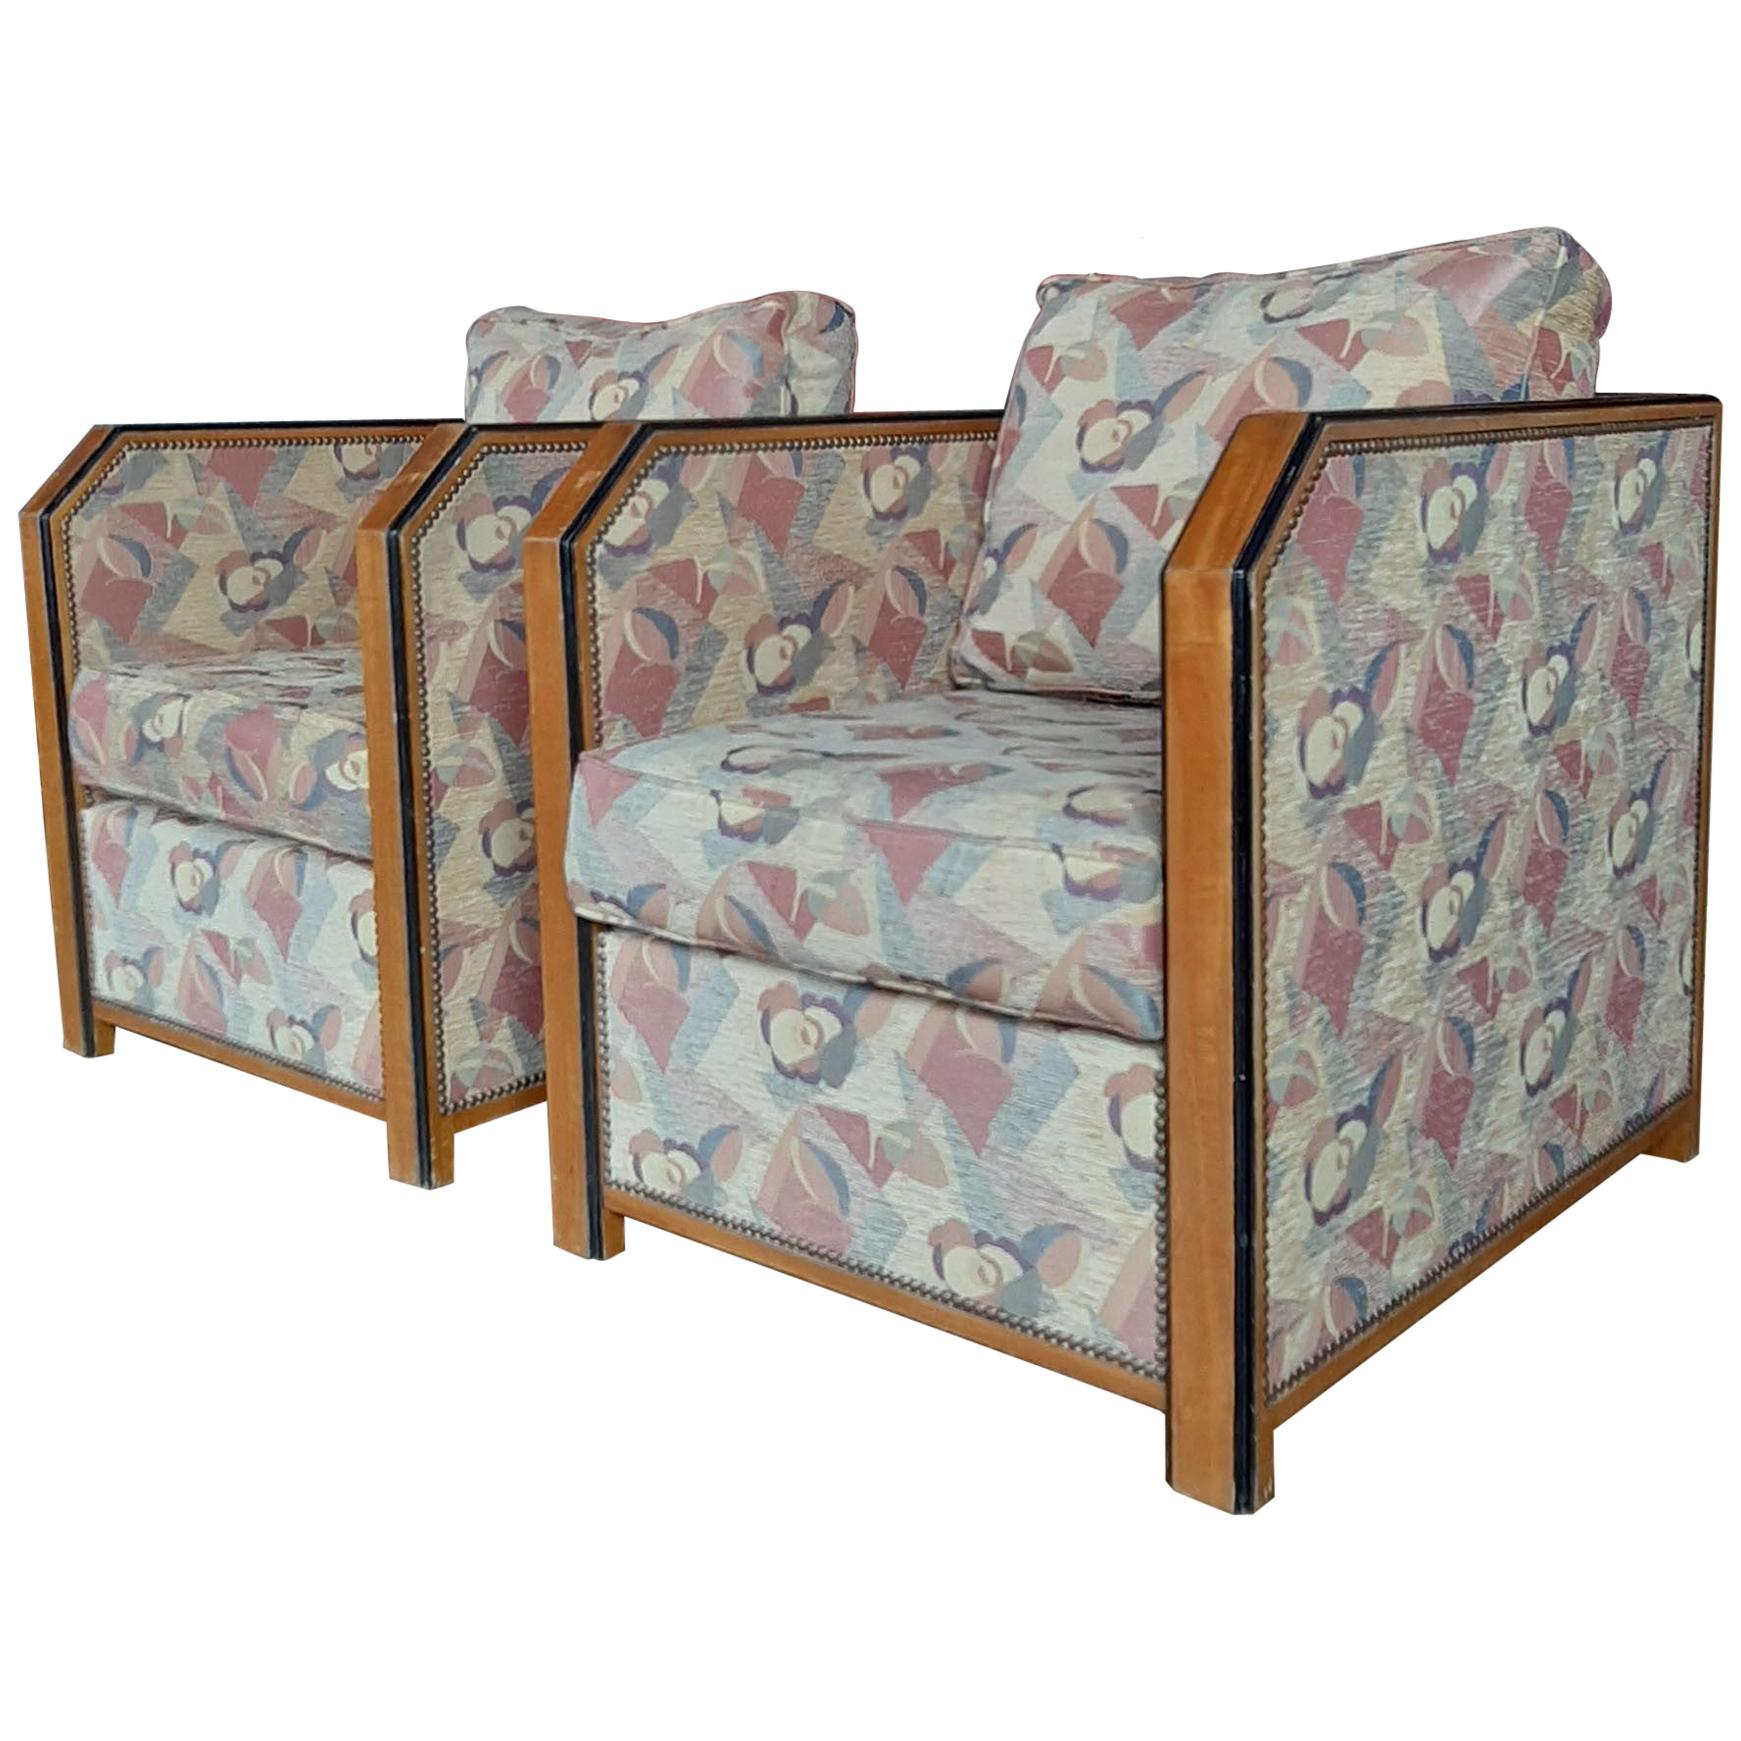 Pair of Upholstered Large French Art Deco Club Chairs 1930s